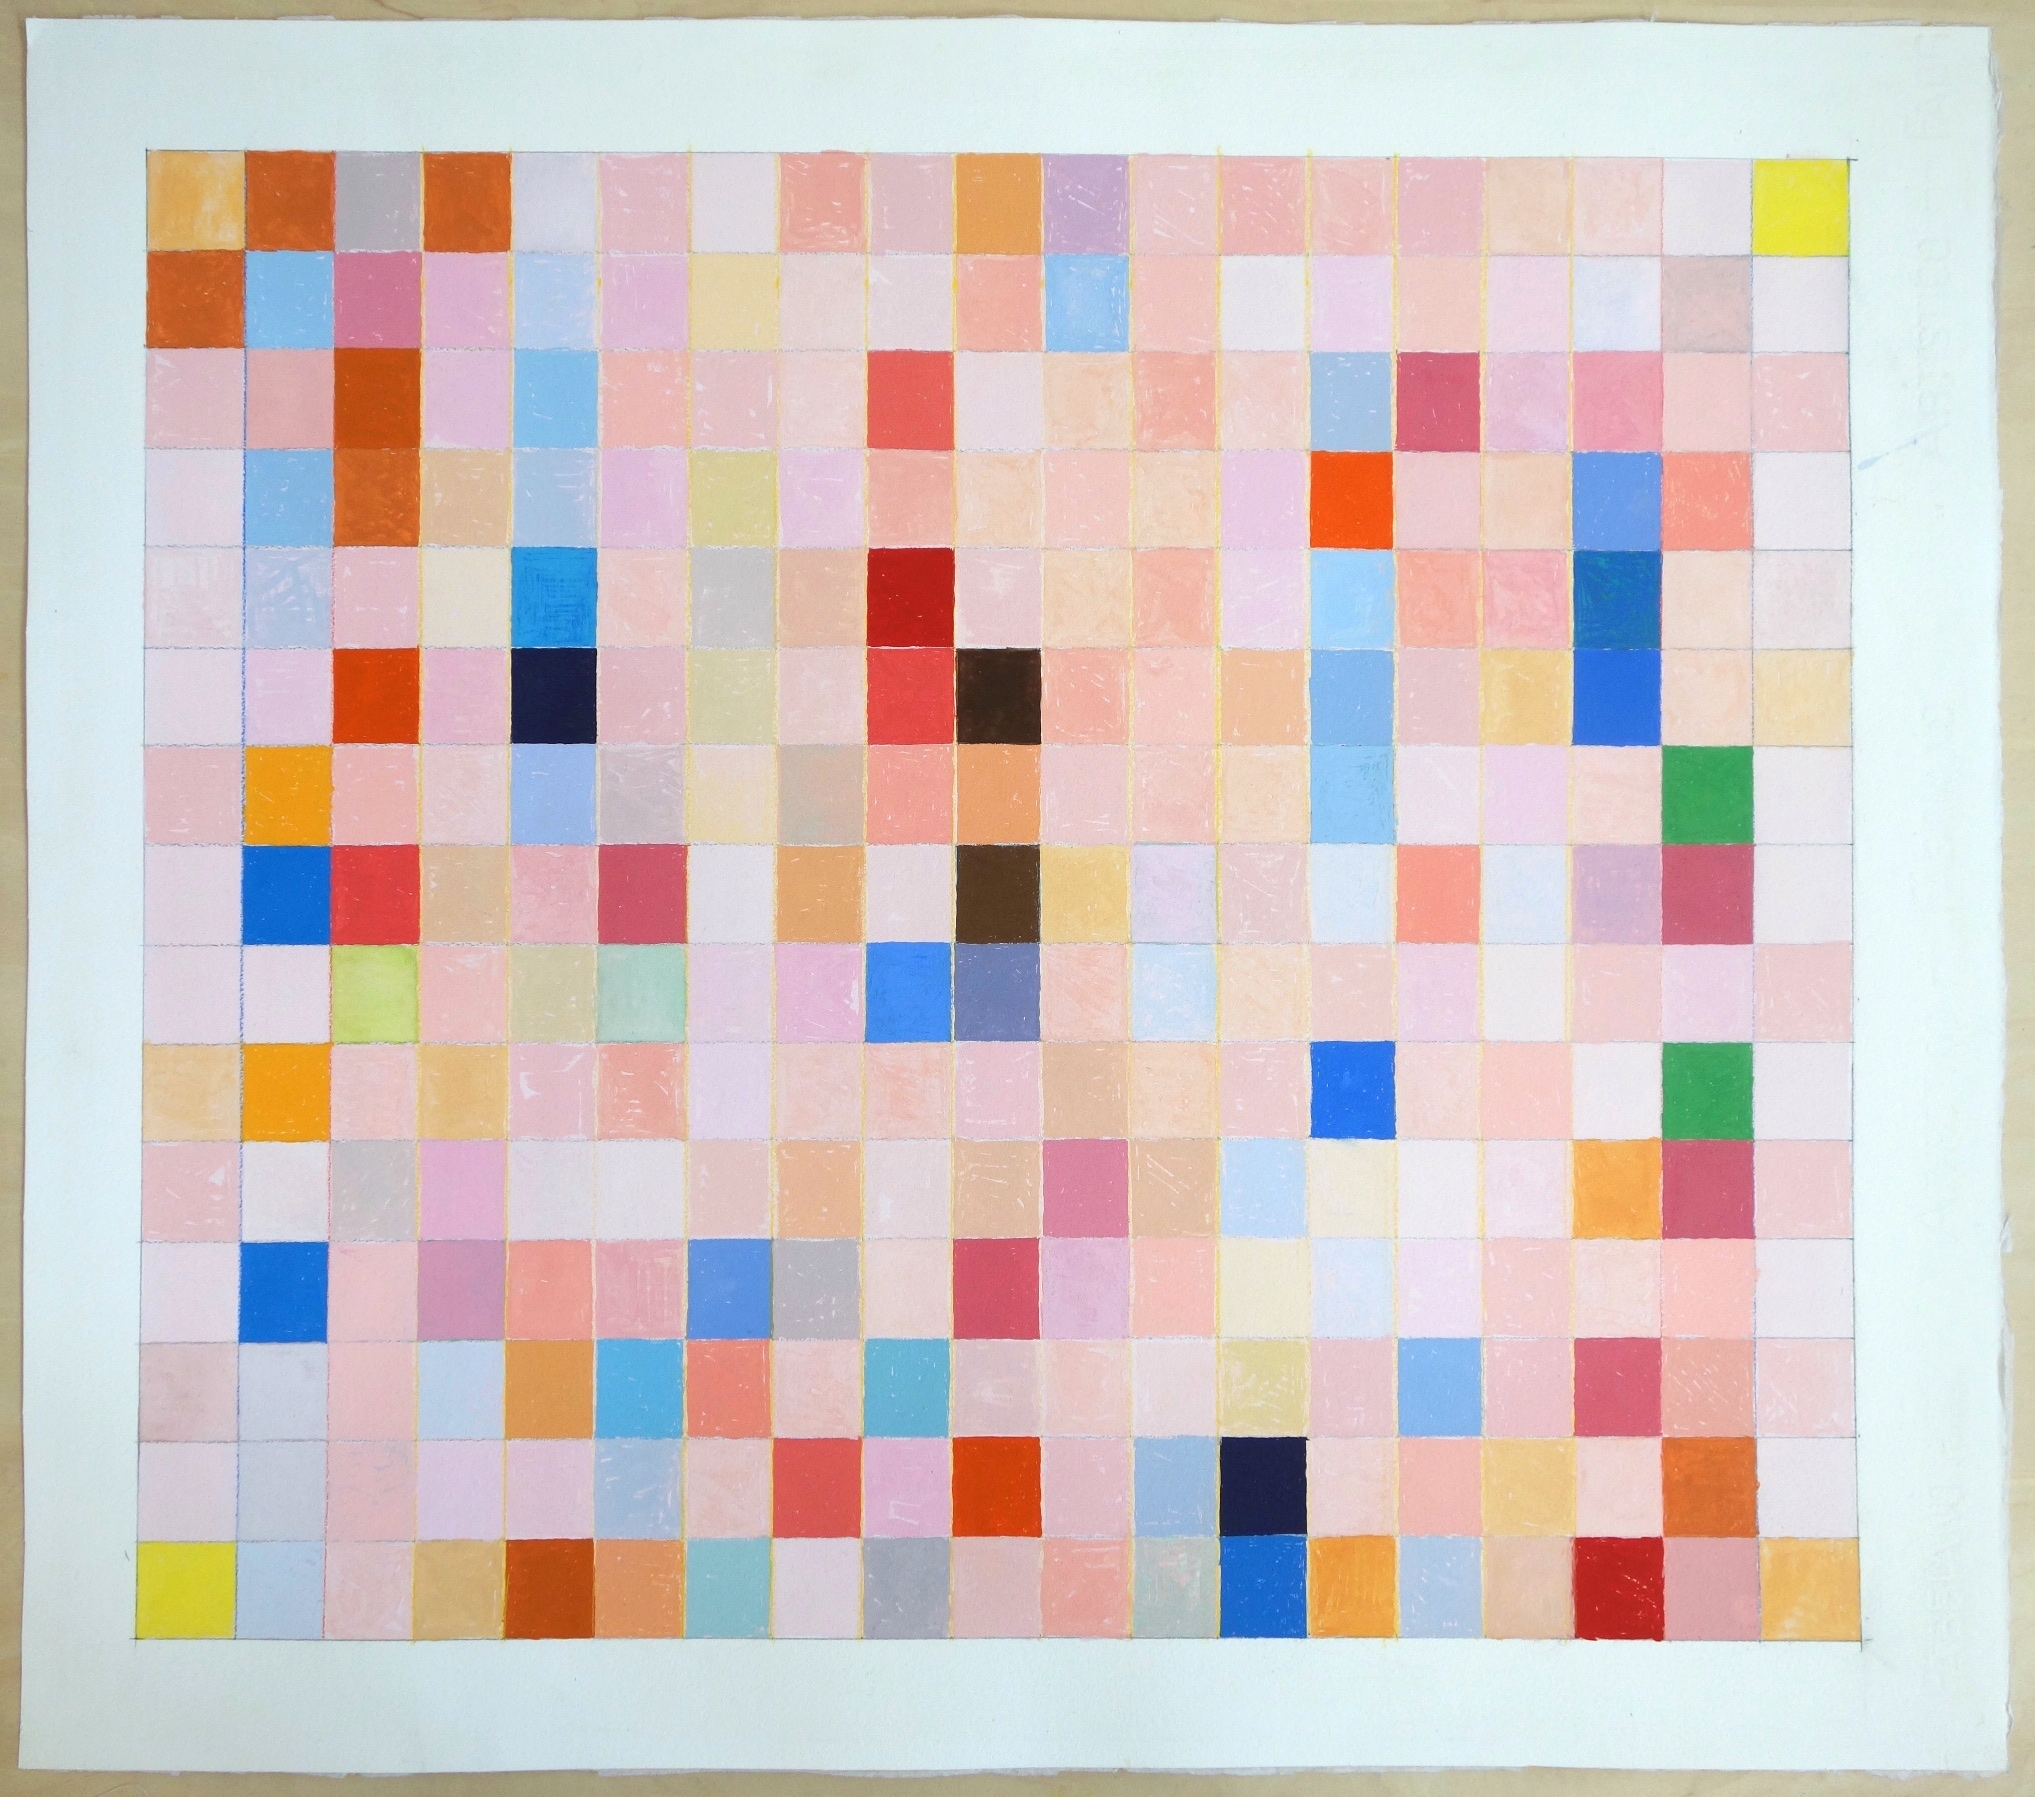 (Untitled) (2013), Gouache on Paper. paper 22x25; image 19x21.5 in.